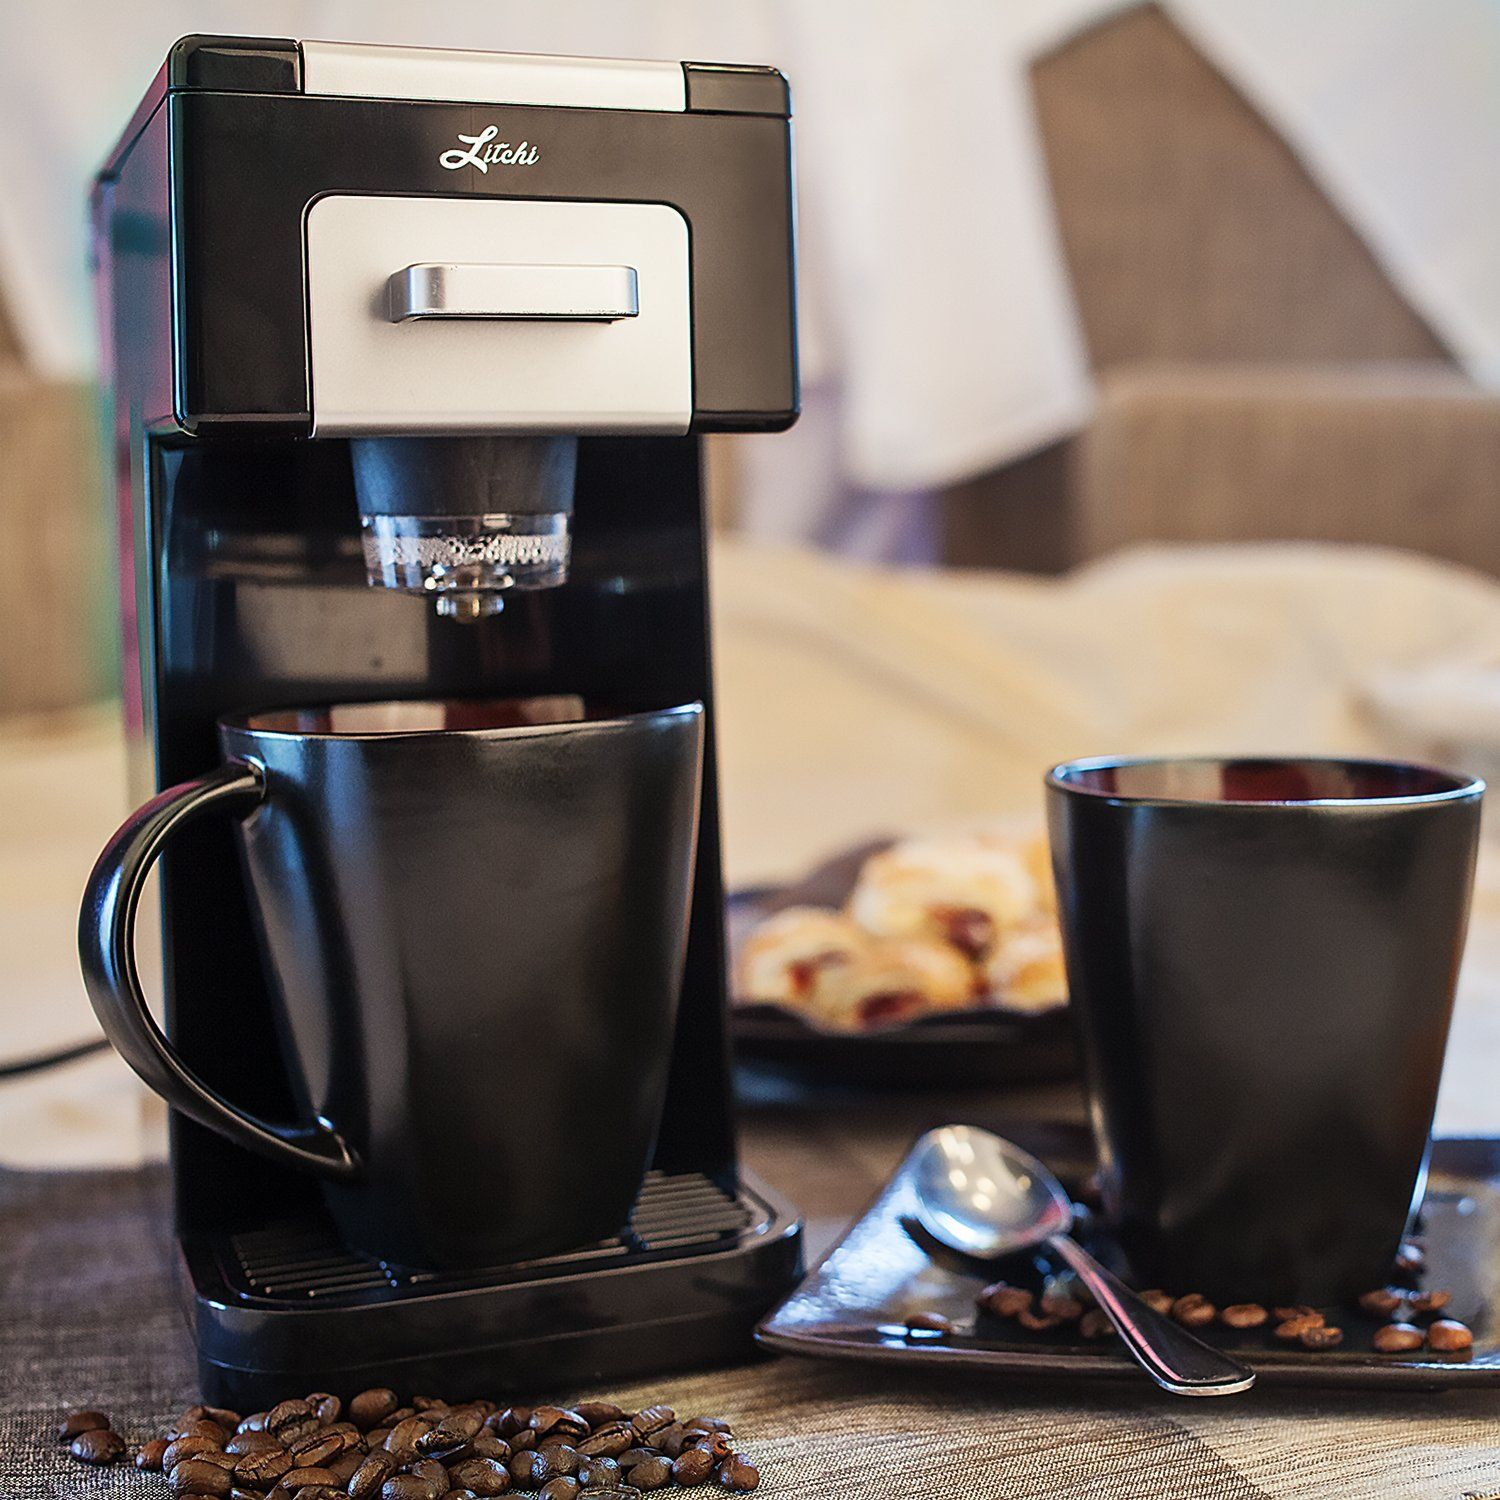 Litchi Single Serve Coffee Maker for Most Single Cup Pods